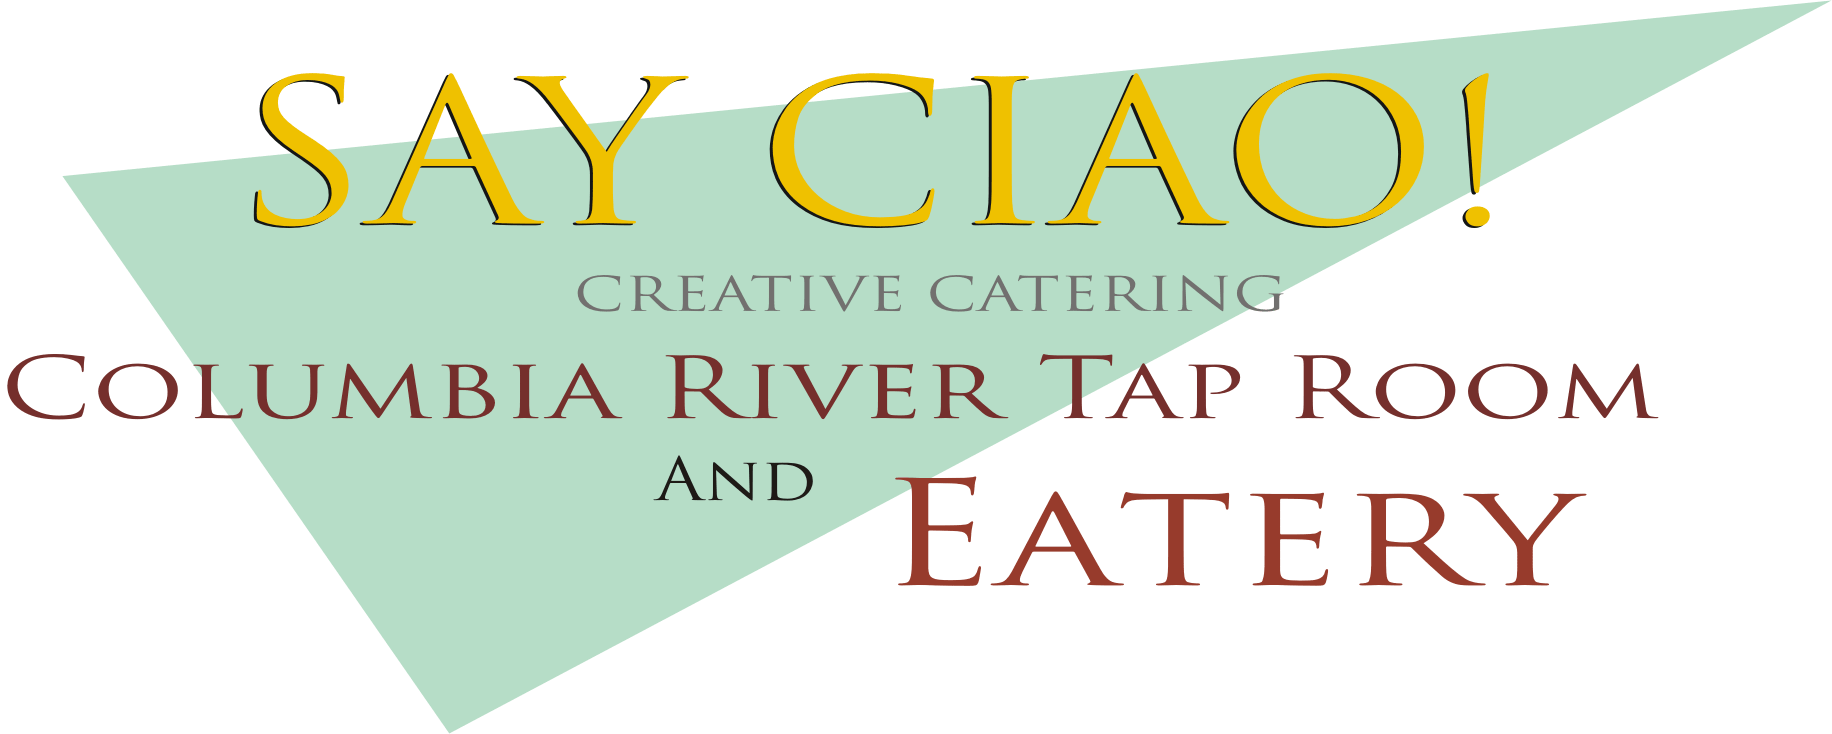 Say Ciao! Taproom & Eatery | Creative Catering